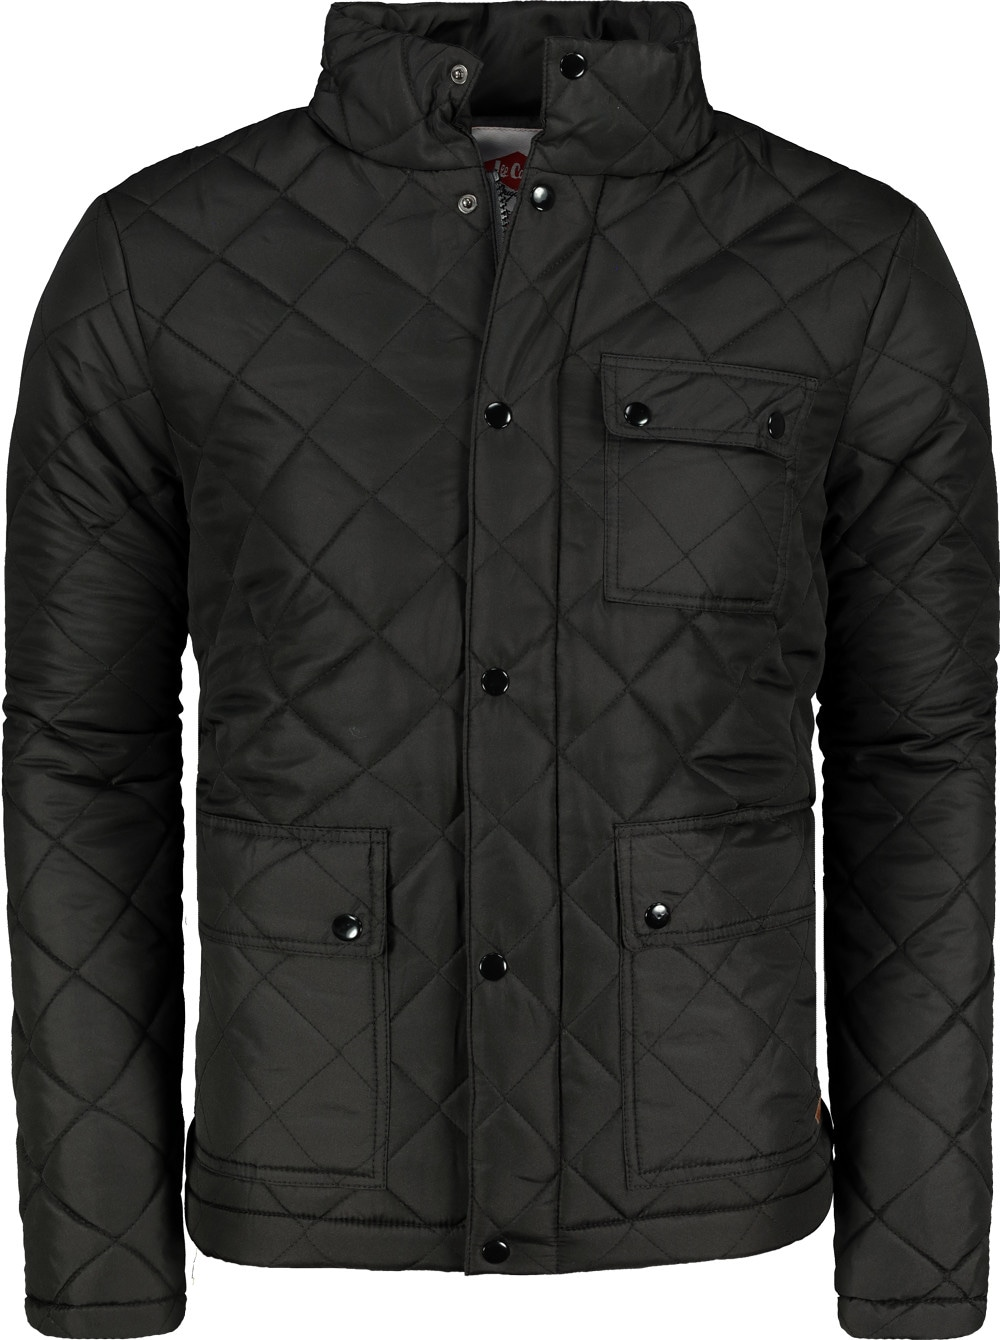 Lee Cooper Quilted Jacket Mens